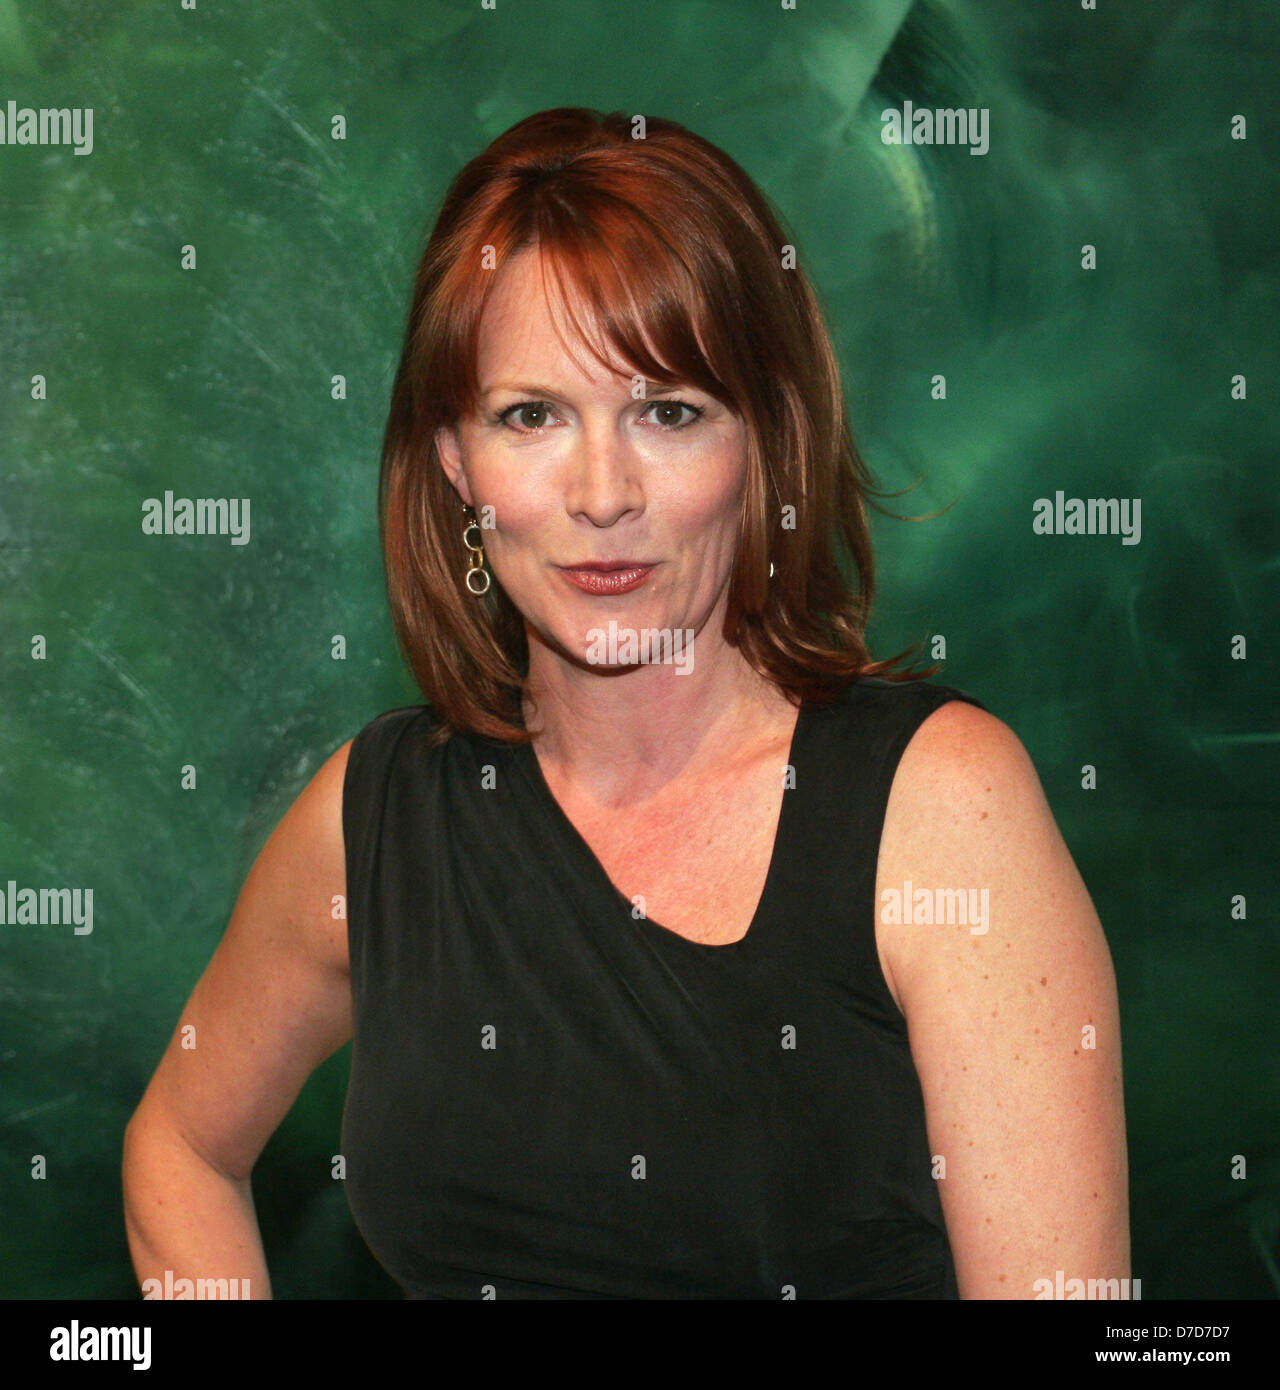 Laurel Holloman Laurel Holloman new picture